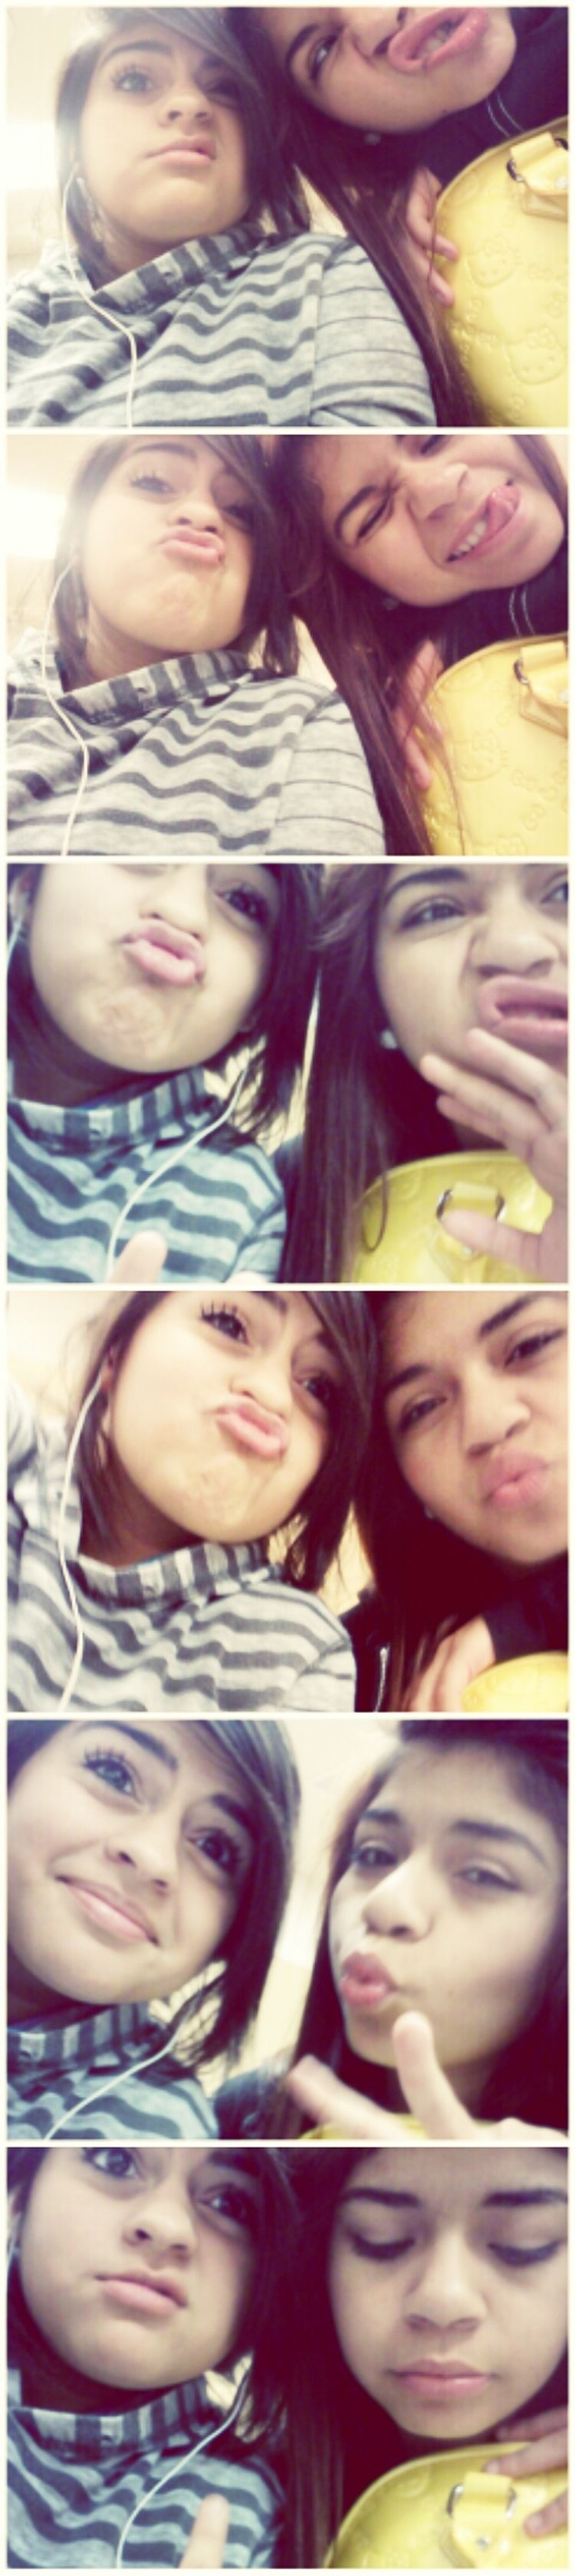 me & MY Bestfriend on our ugly days but oh well were still pretty ;)